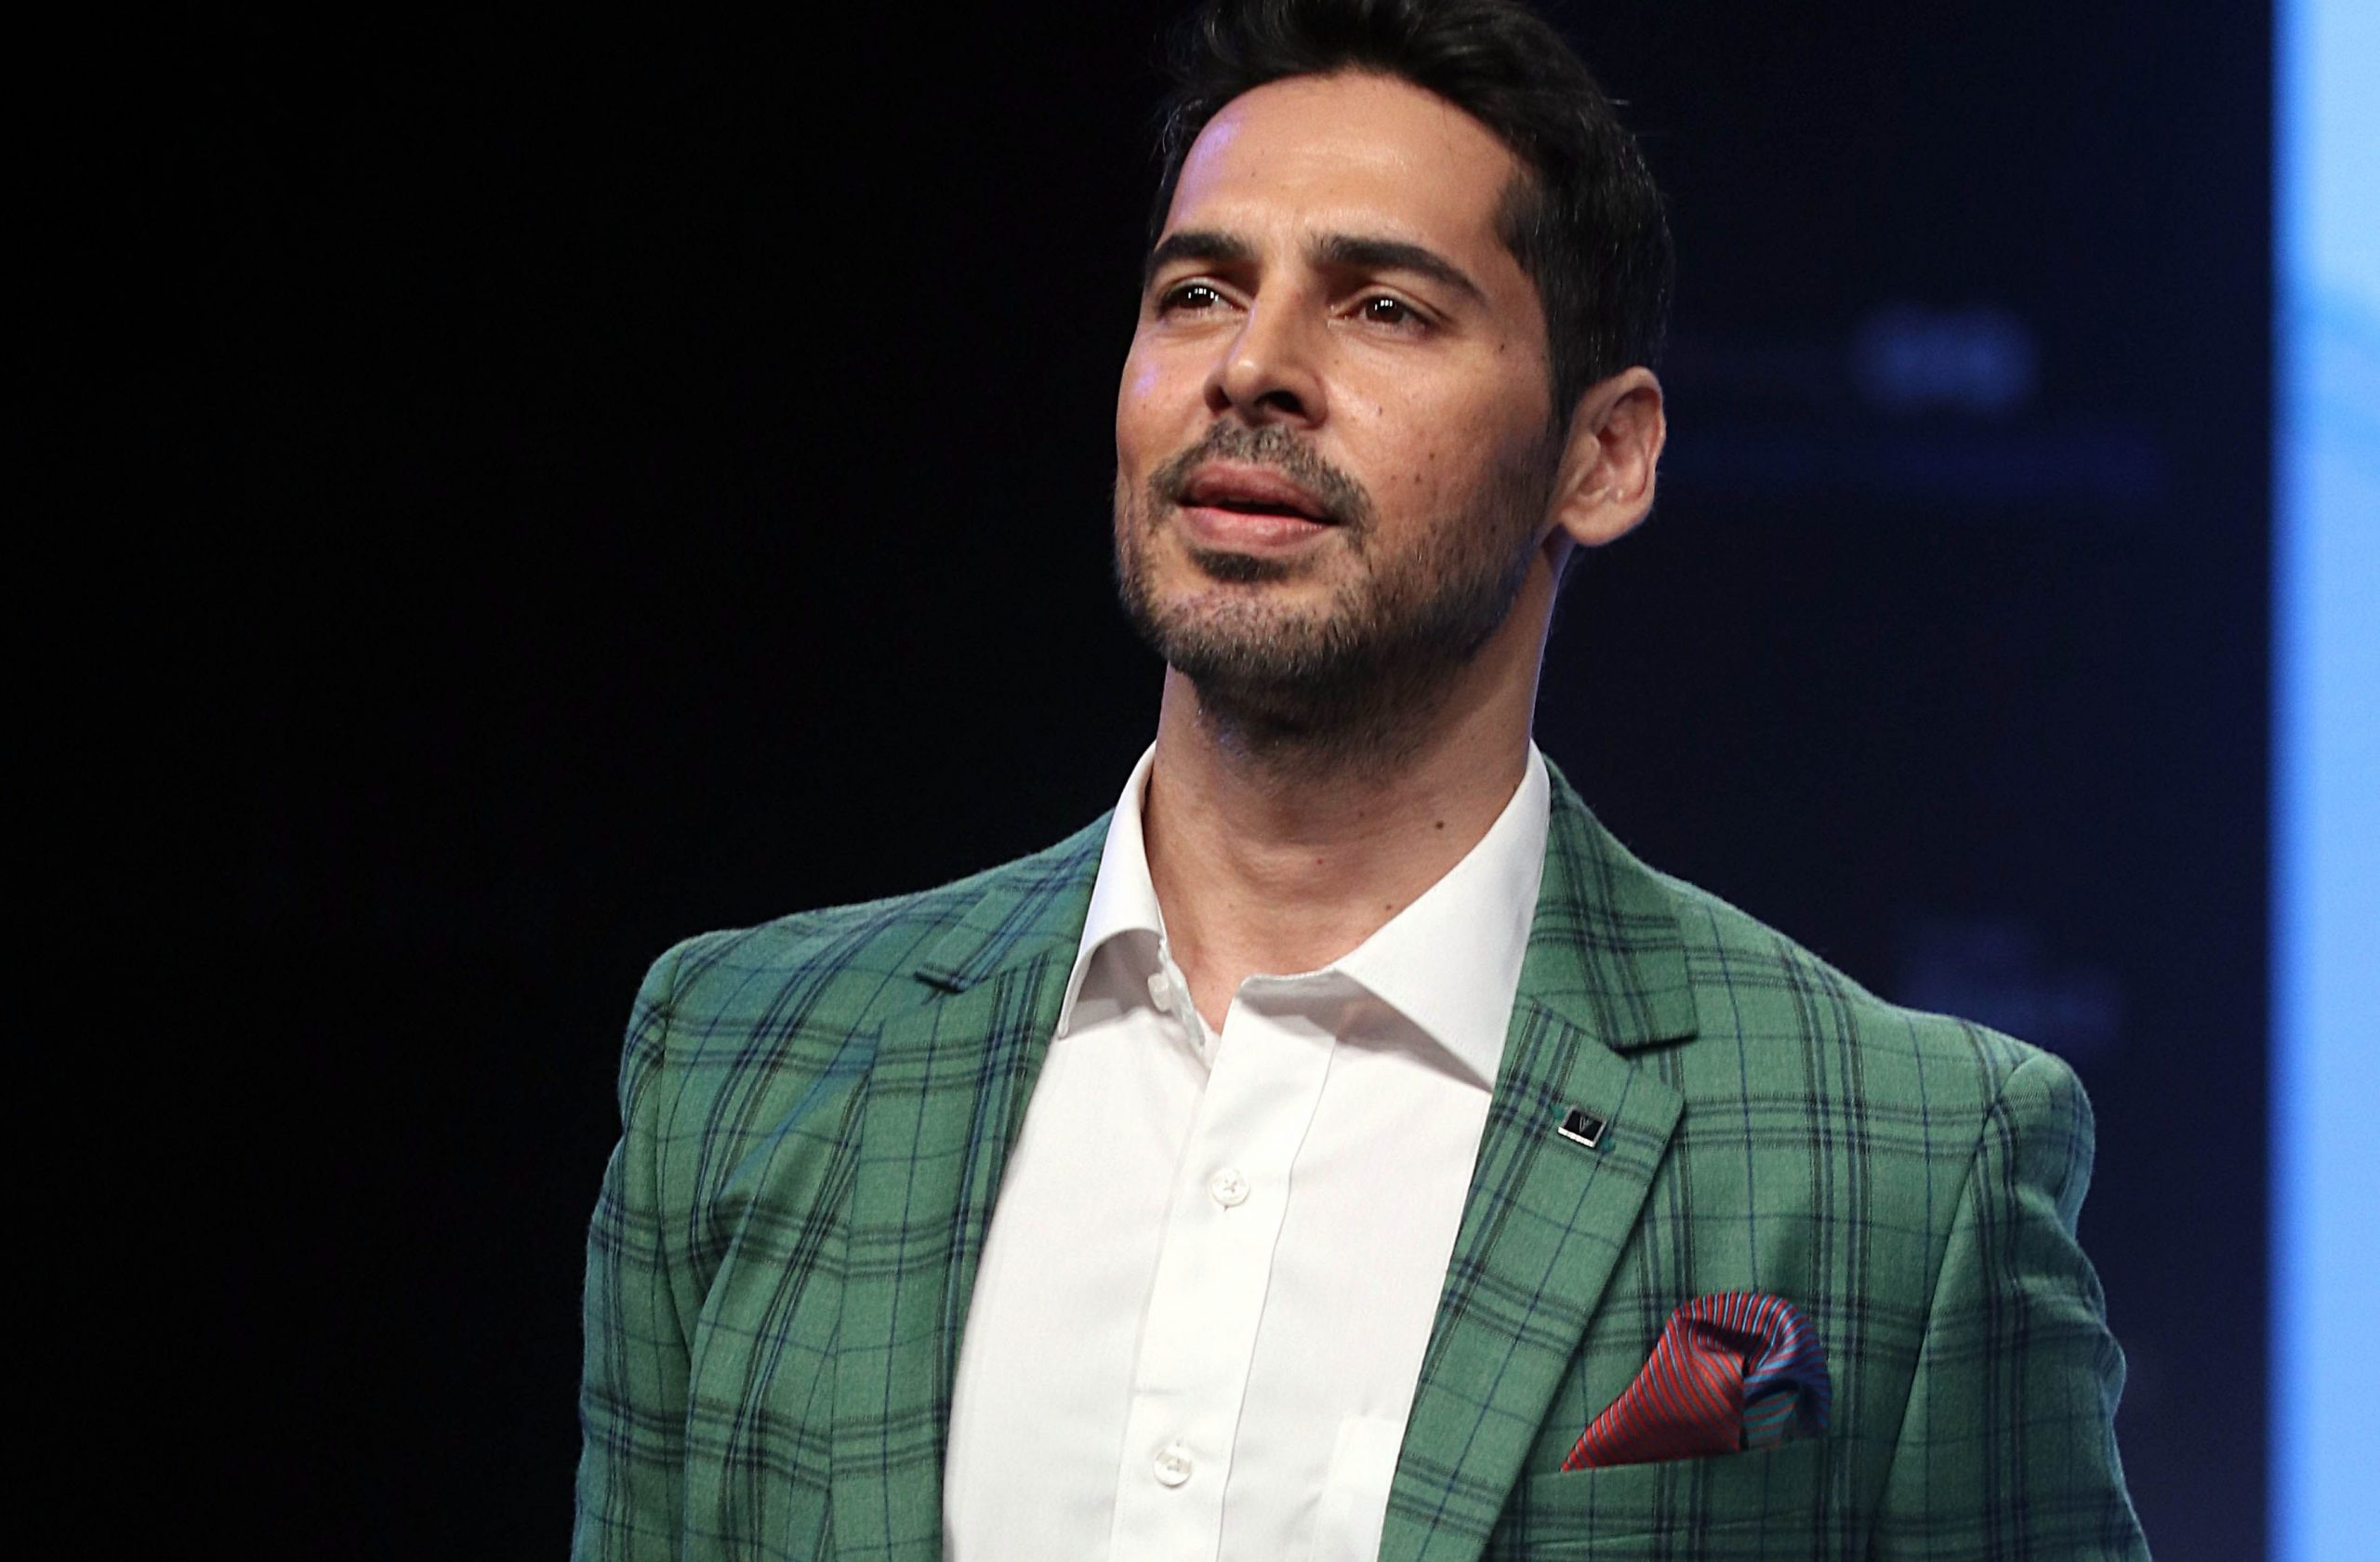 Dino Morea (Photo credit: STR/AFP via Getty Images)